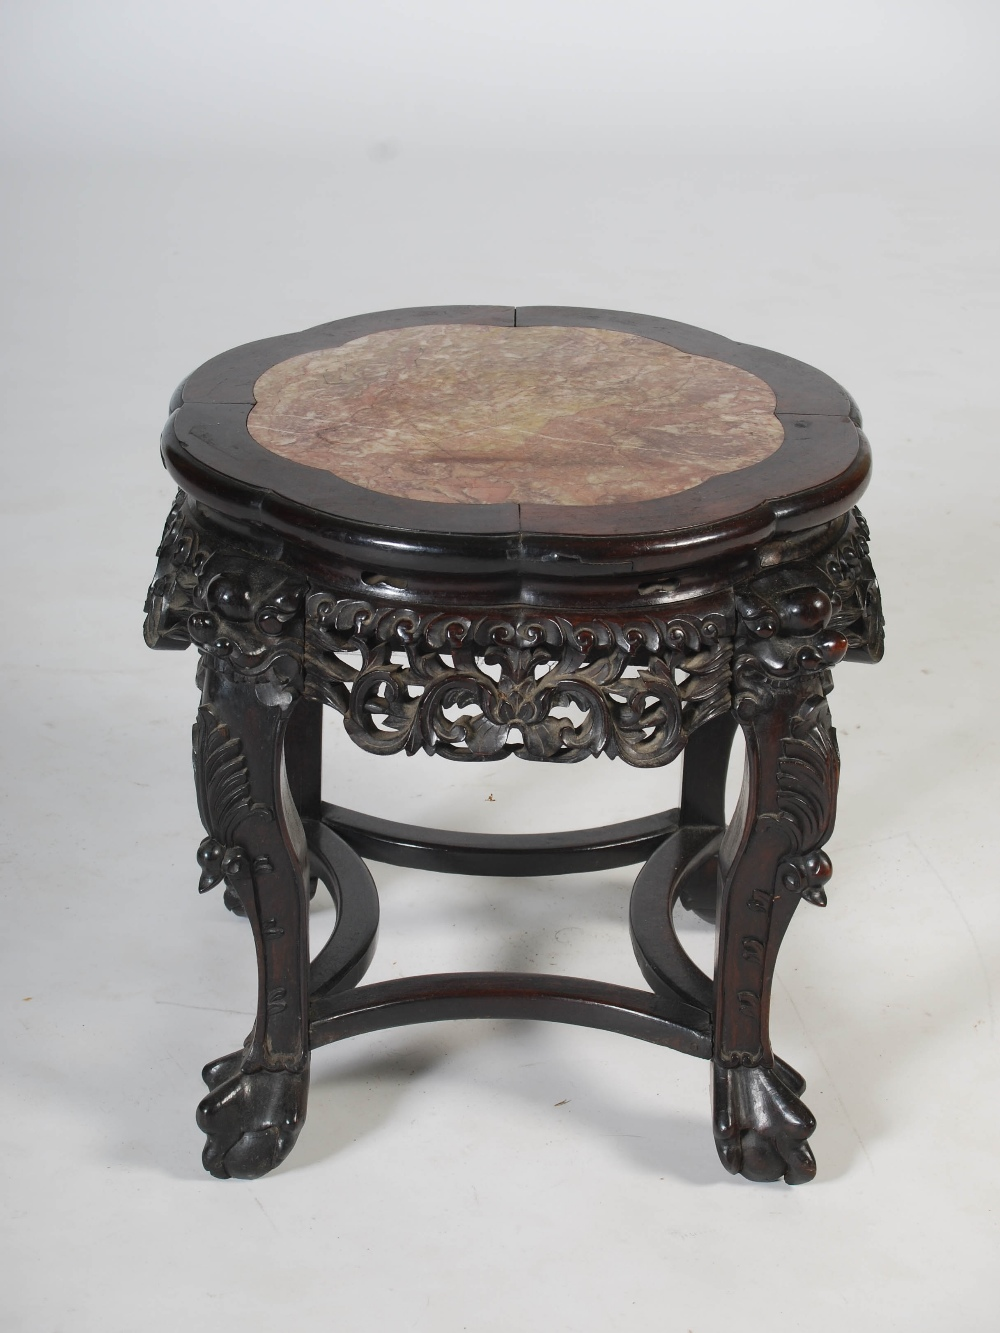 Lot 58 - A Chinese dark wood jardiniere stand, Qing Dynasty, the shaped circular top with mottled red